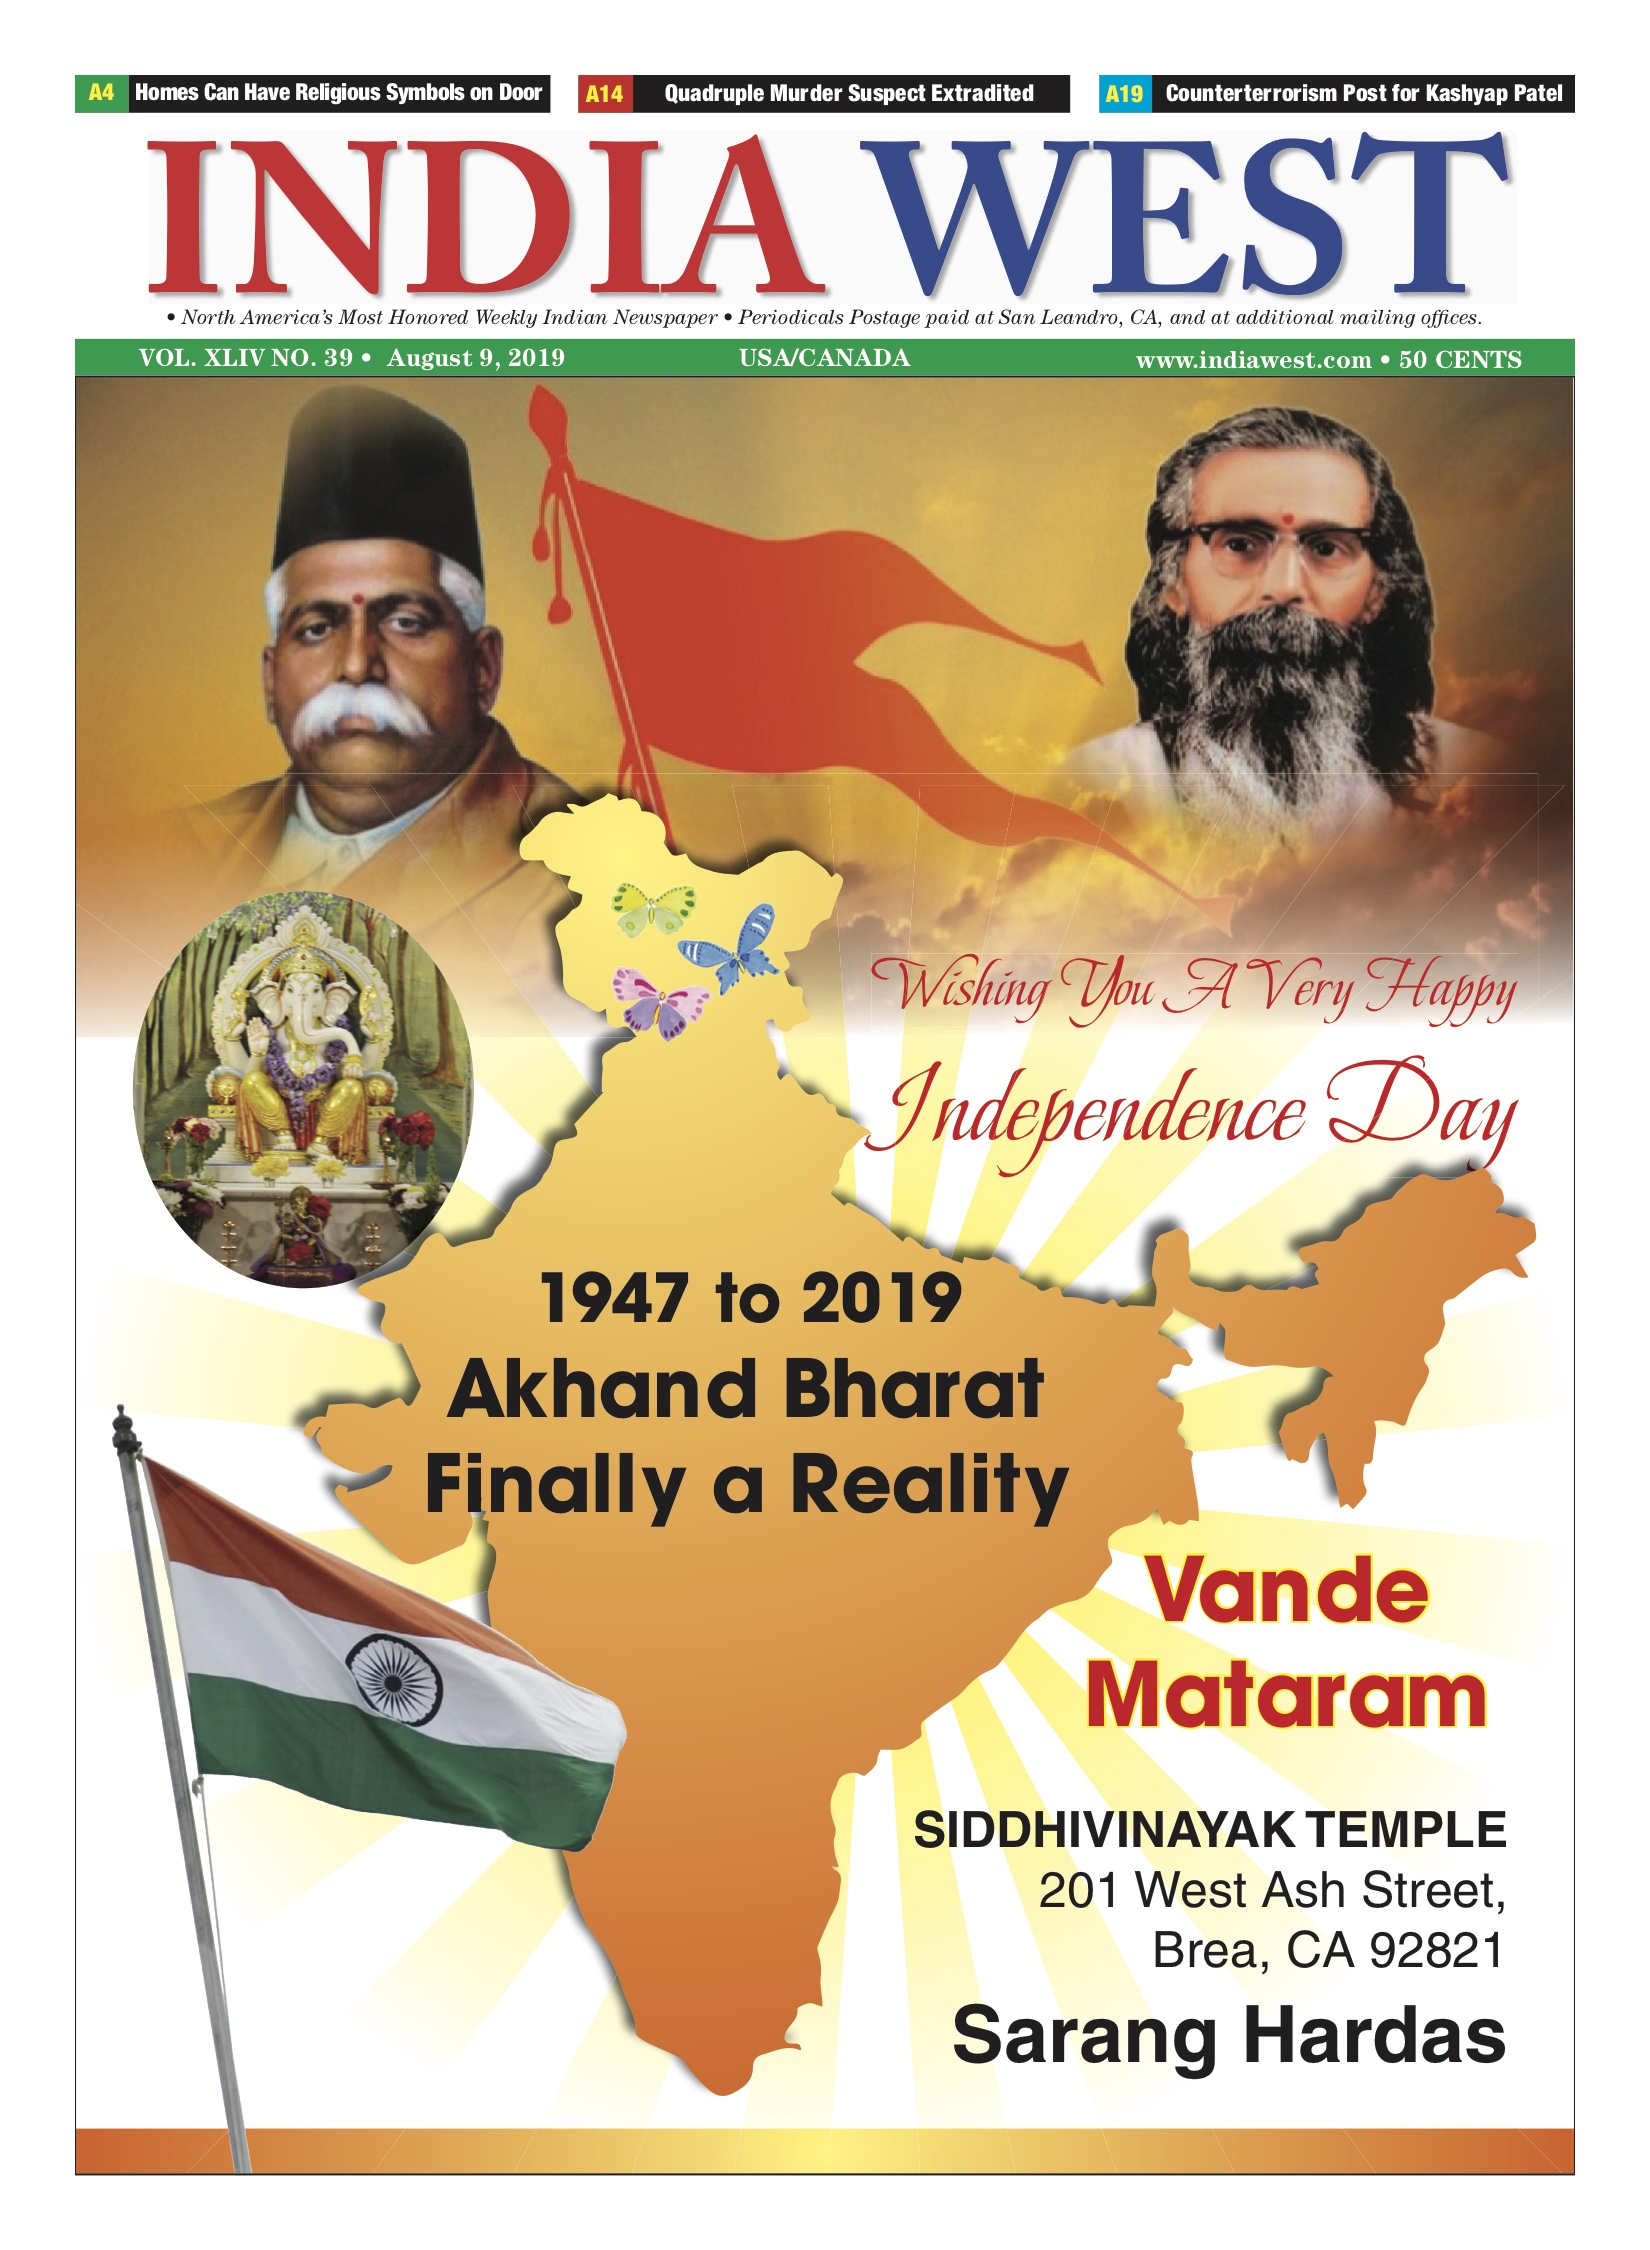 India West Diaspora Newspaper Sells Out to RSS